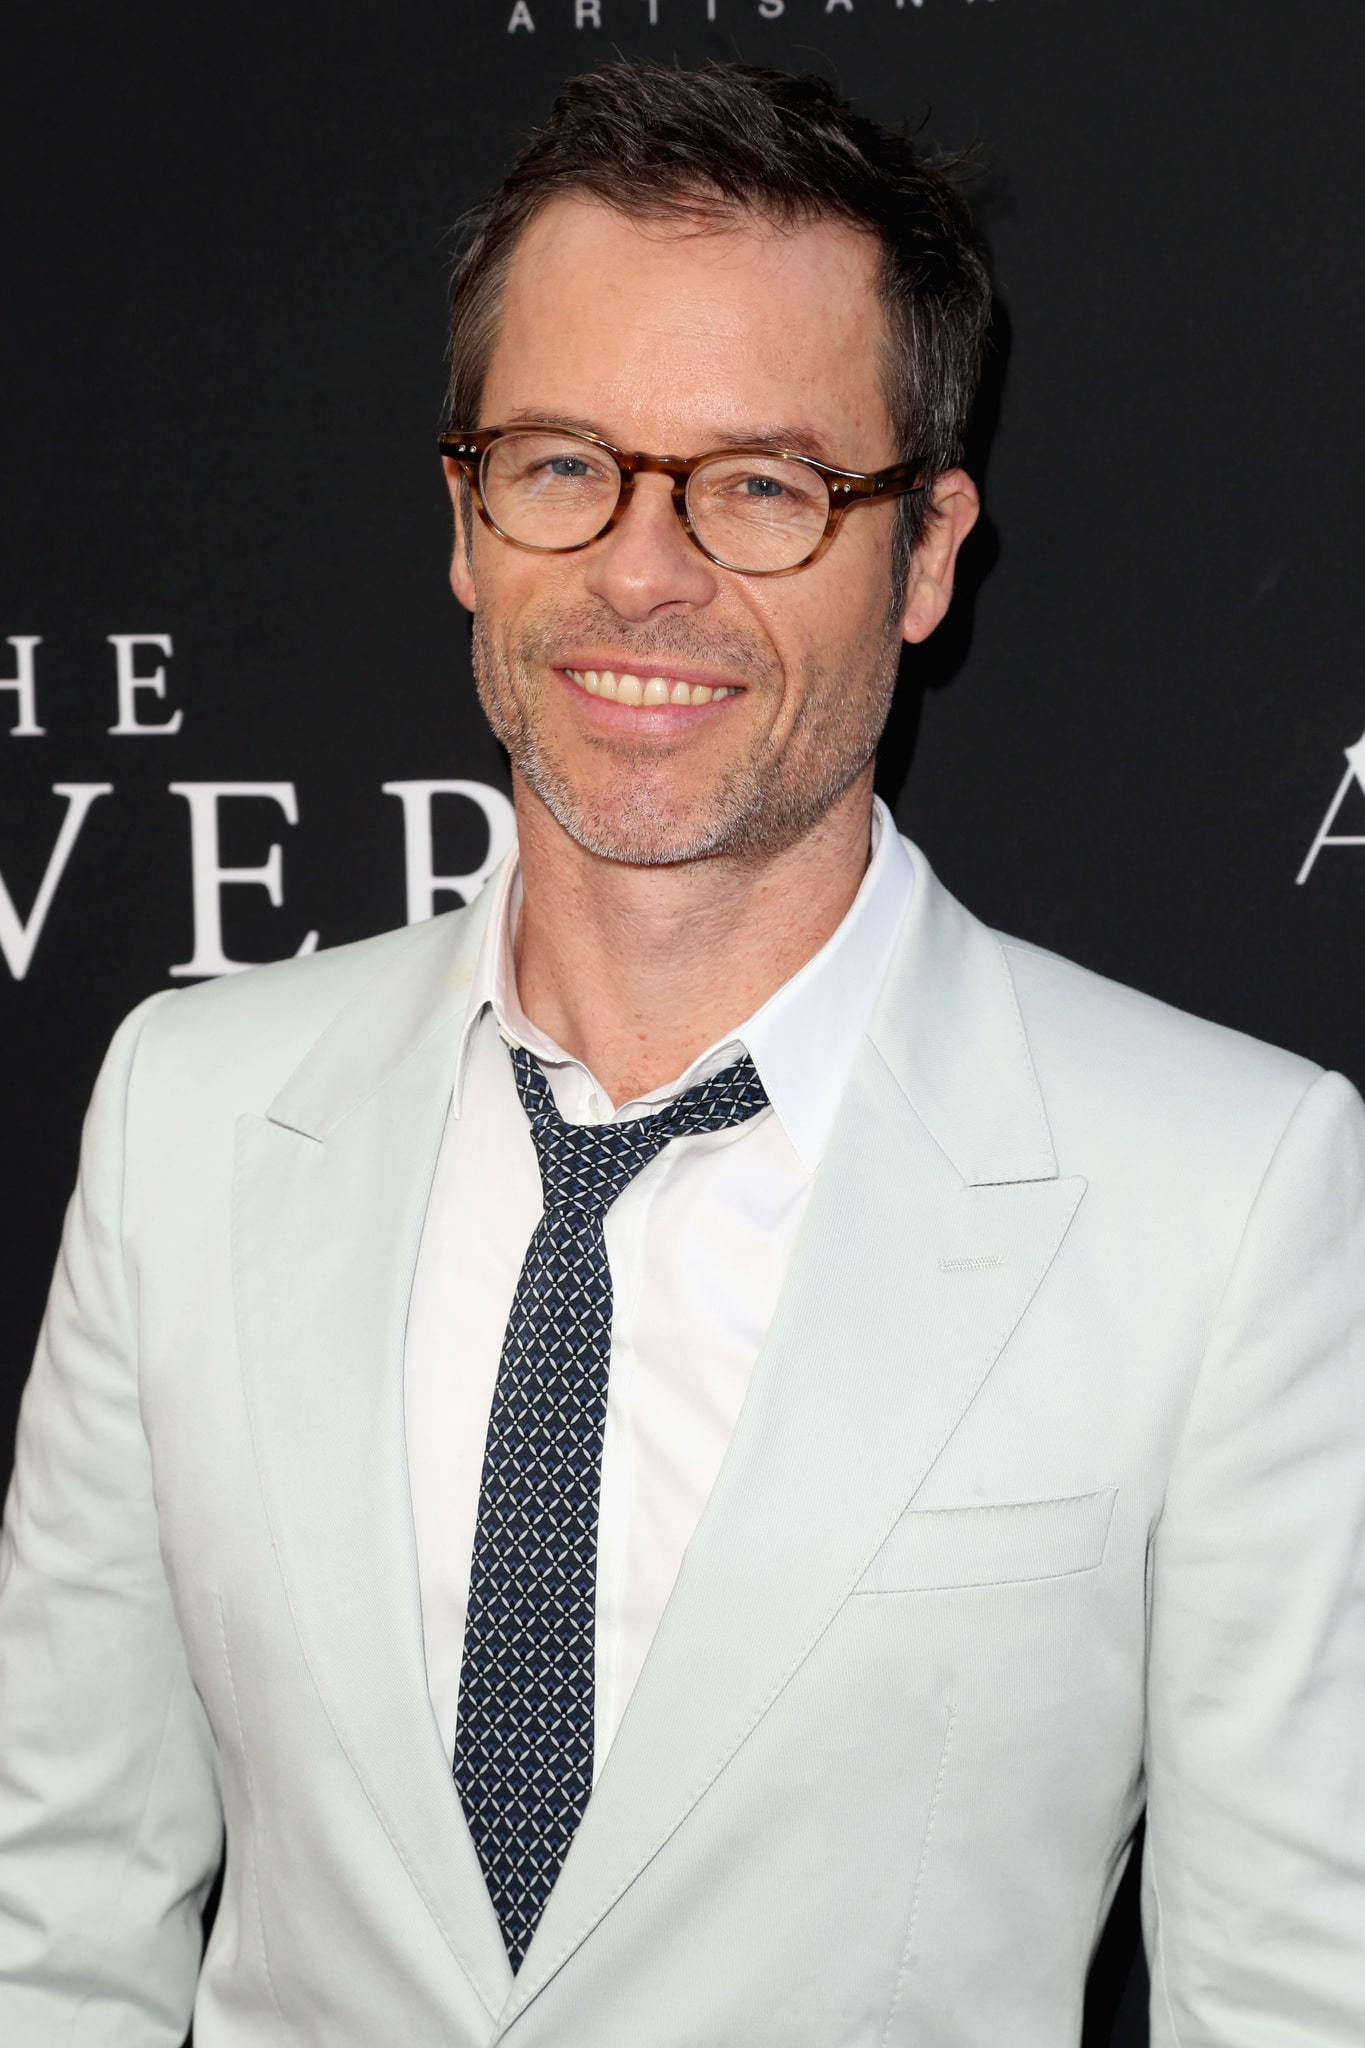 Guy Pearce British, Australian Actor, Musician